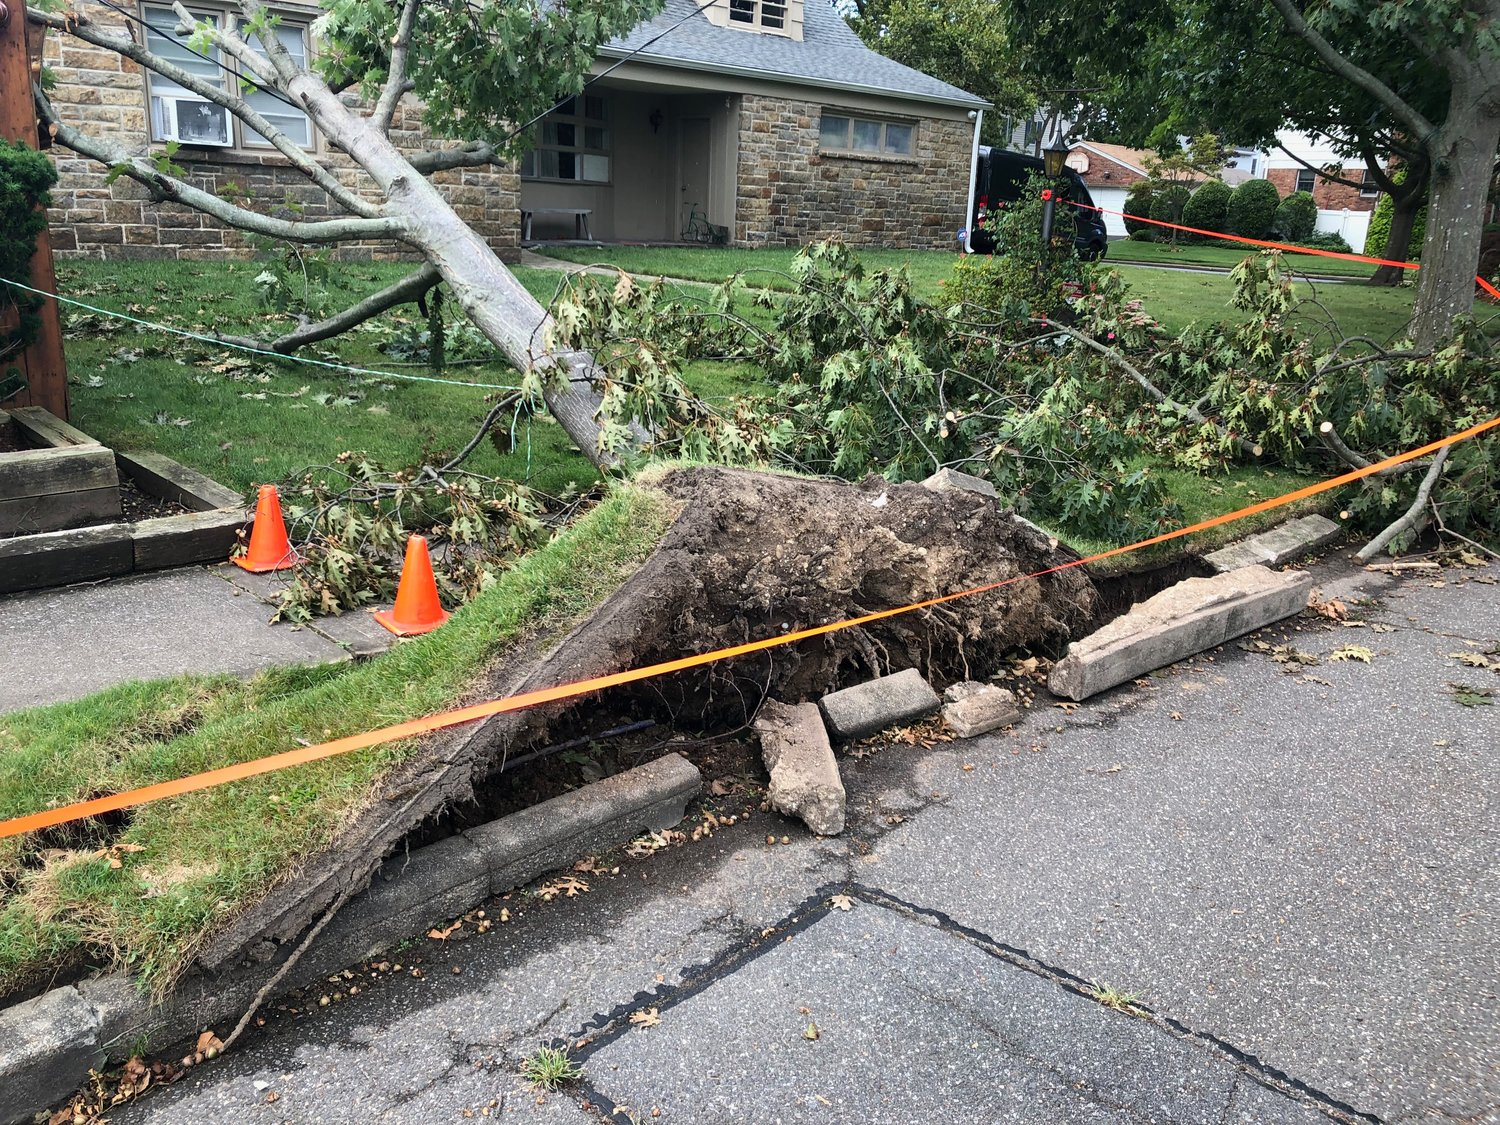 Although there was no major storm damage on Spencer Avenue in Lynbrook, on Waverly Avenue a tree was uprooted by tropical storm Isaias.